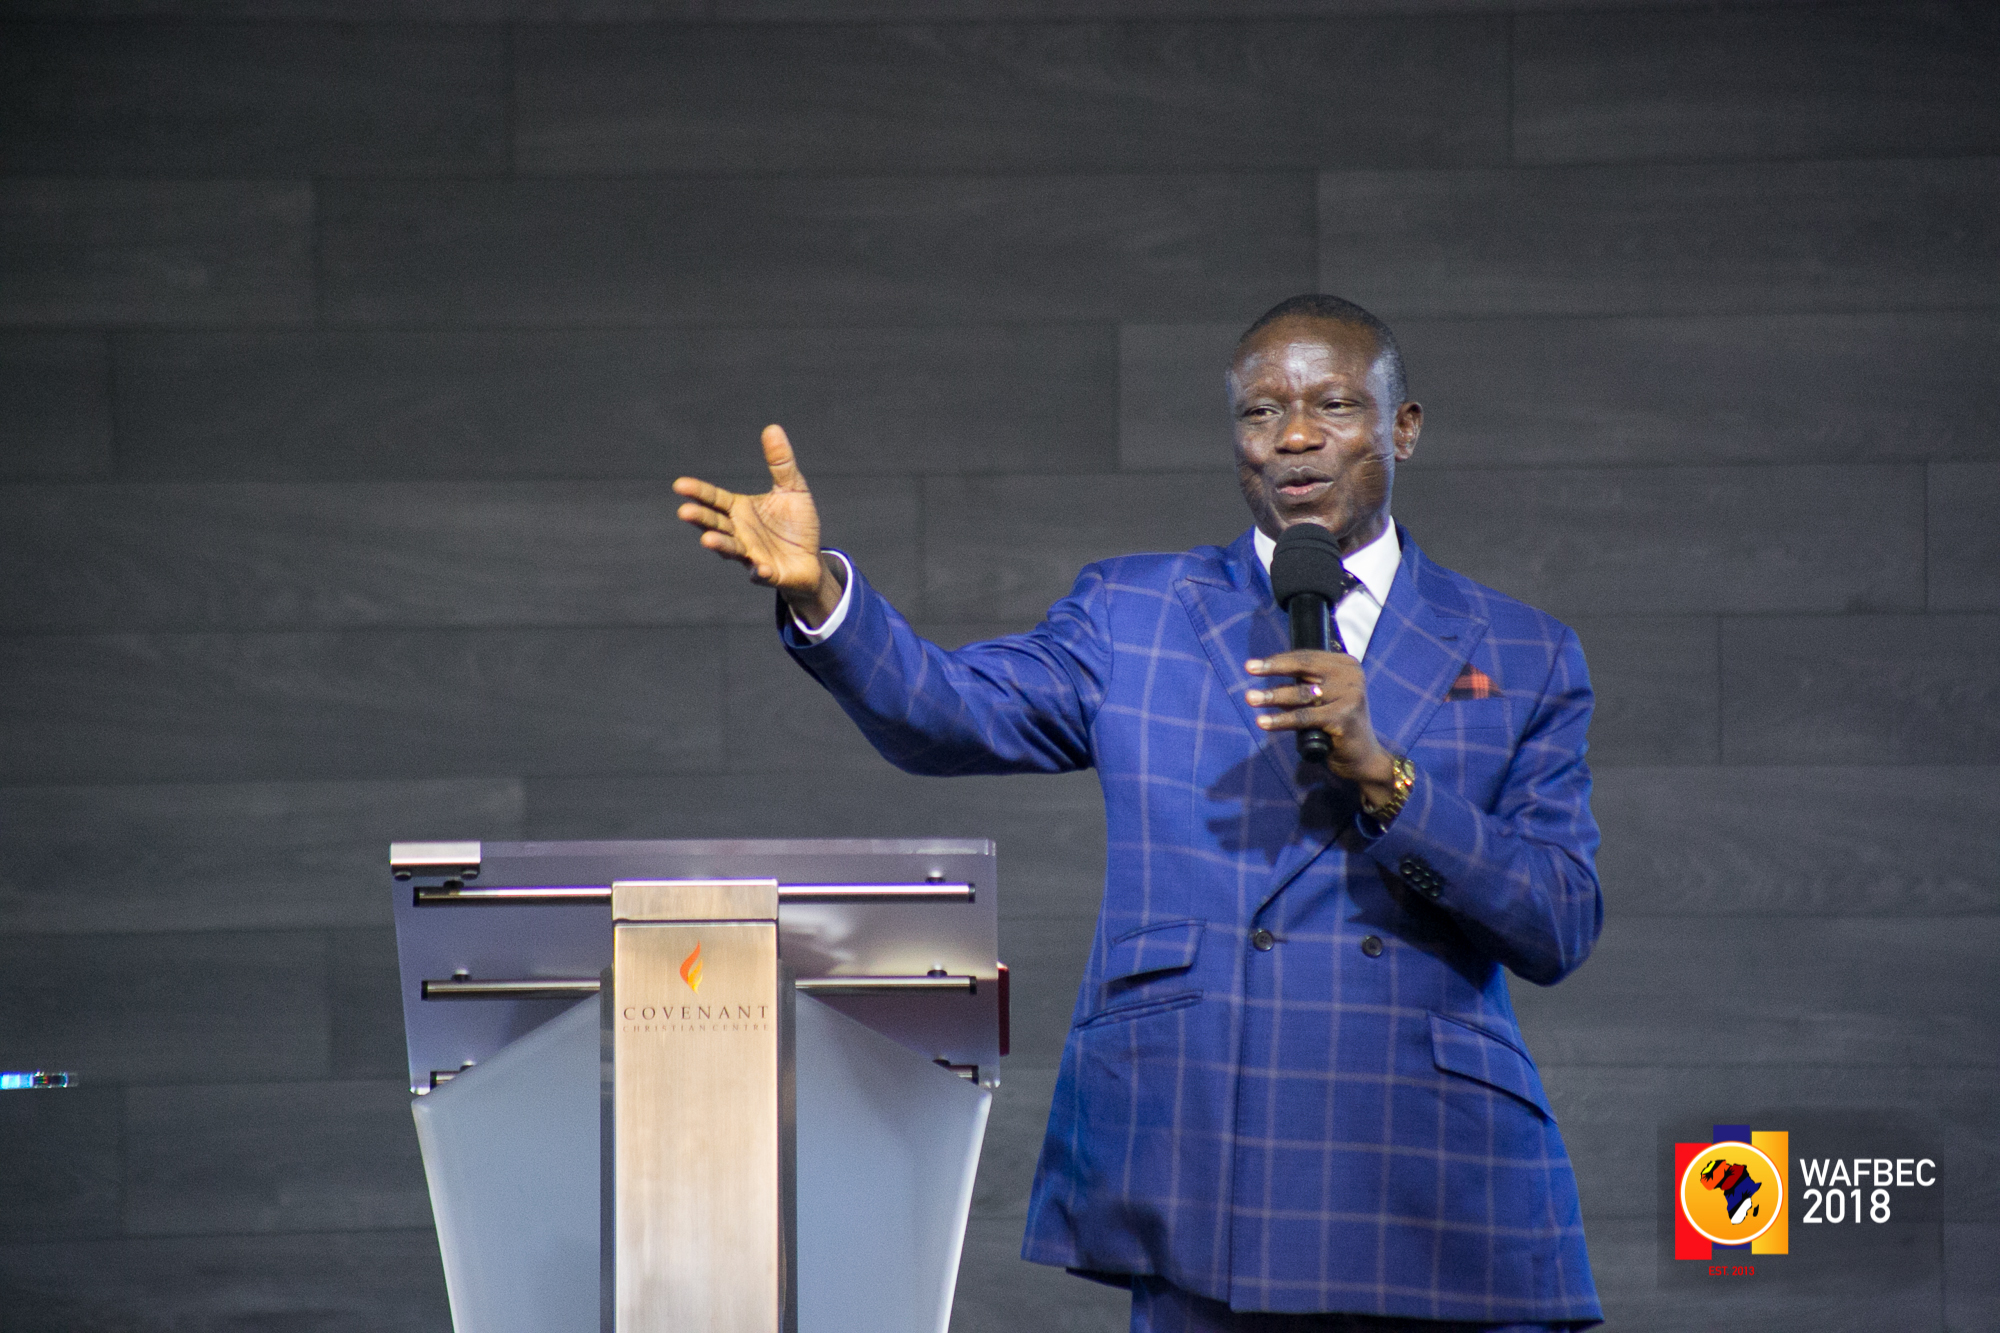 WAFBEC 2018 – Day 4 (Evening Session 2) with BISHOP WALE OKE